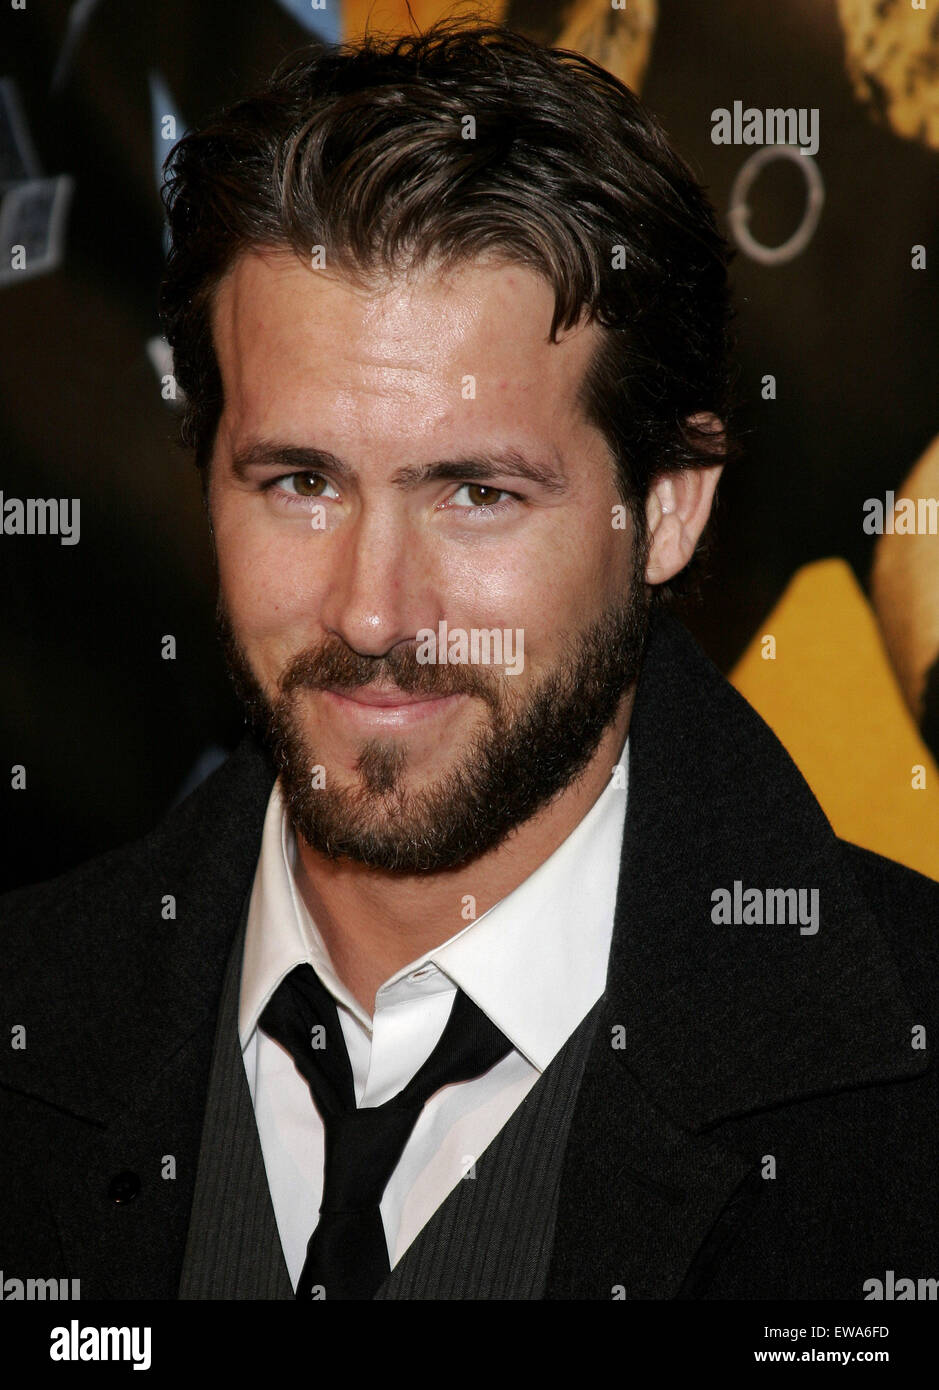 Ryan Reynolds attends the World Premiere of 'Smokin' Aces' held at the Grauman's Chinese Theater - Stock Image